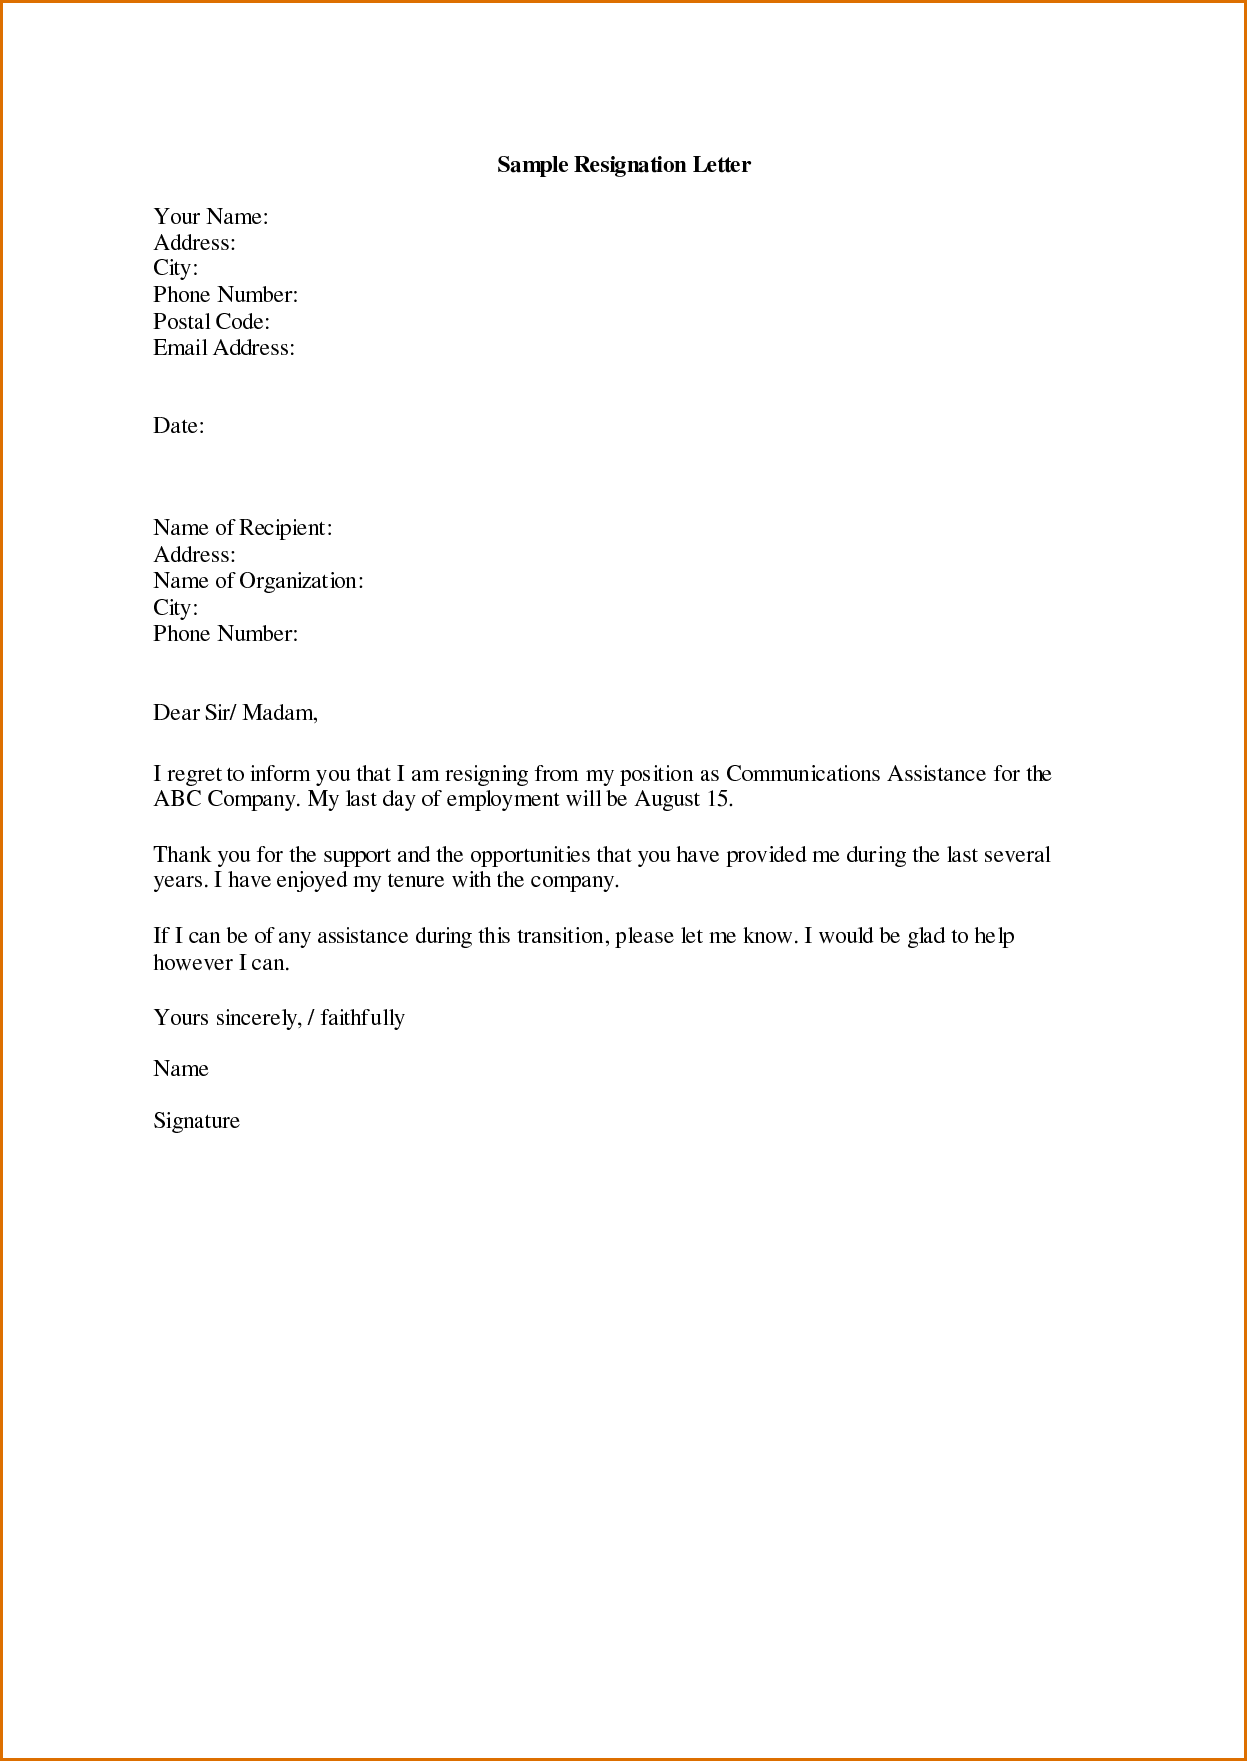 Simple resignation letter 1 month notice as sample letter of simple resignation letter 1 month notice as sample letter of resignation form resignation pinterest resignation form resignation letter and thecheapjerseys